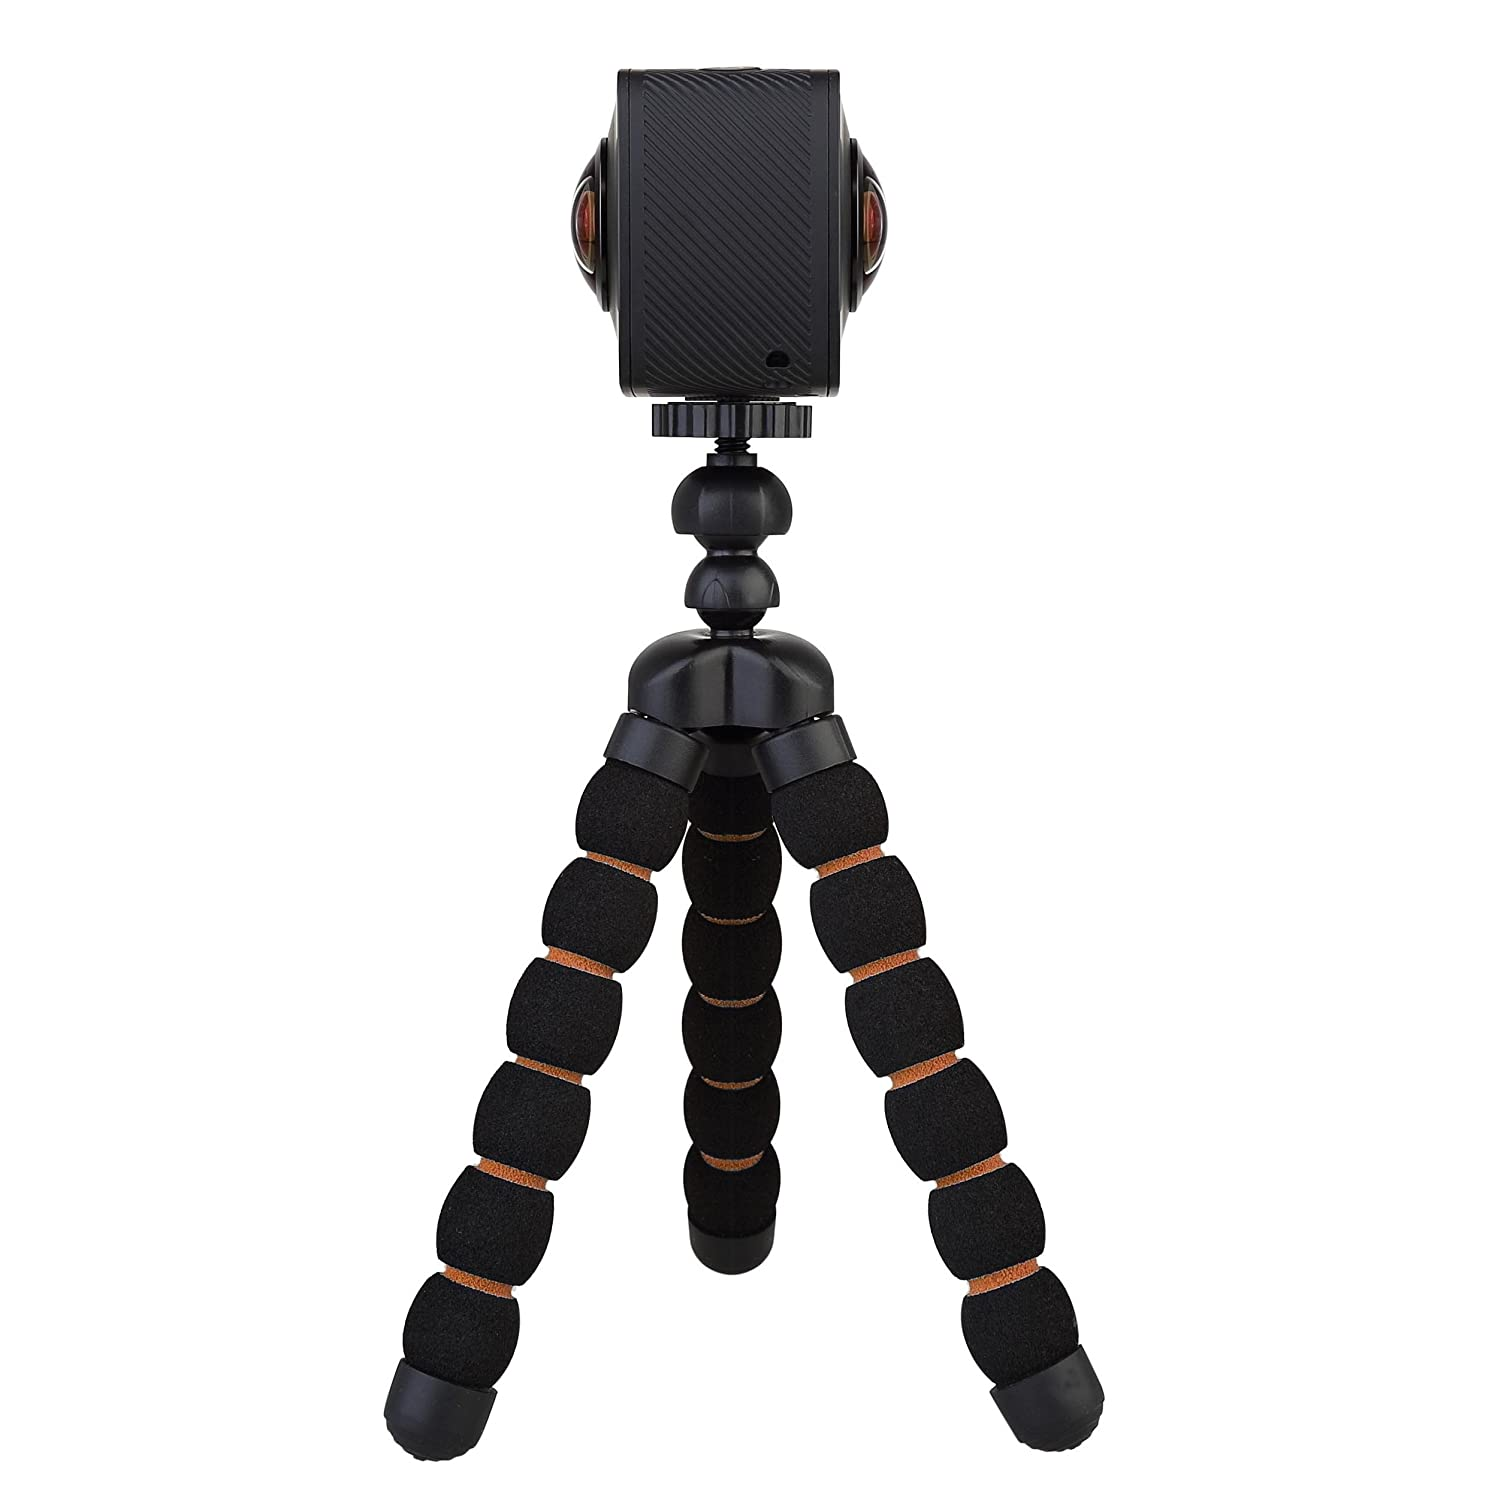 360 Degree Vr Camera With Dual Spherical Lens Block Diagram Pictures Topvision Panoramic Wi Fi Digital Video For Facebook Youtube And Google Maps